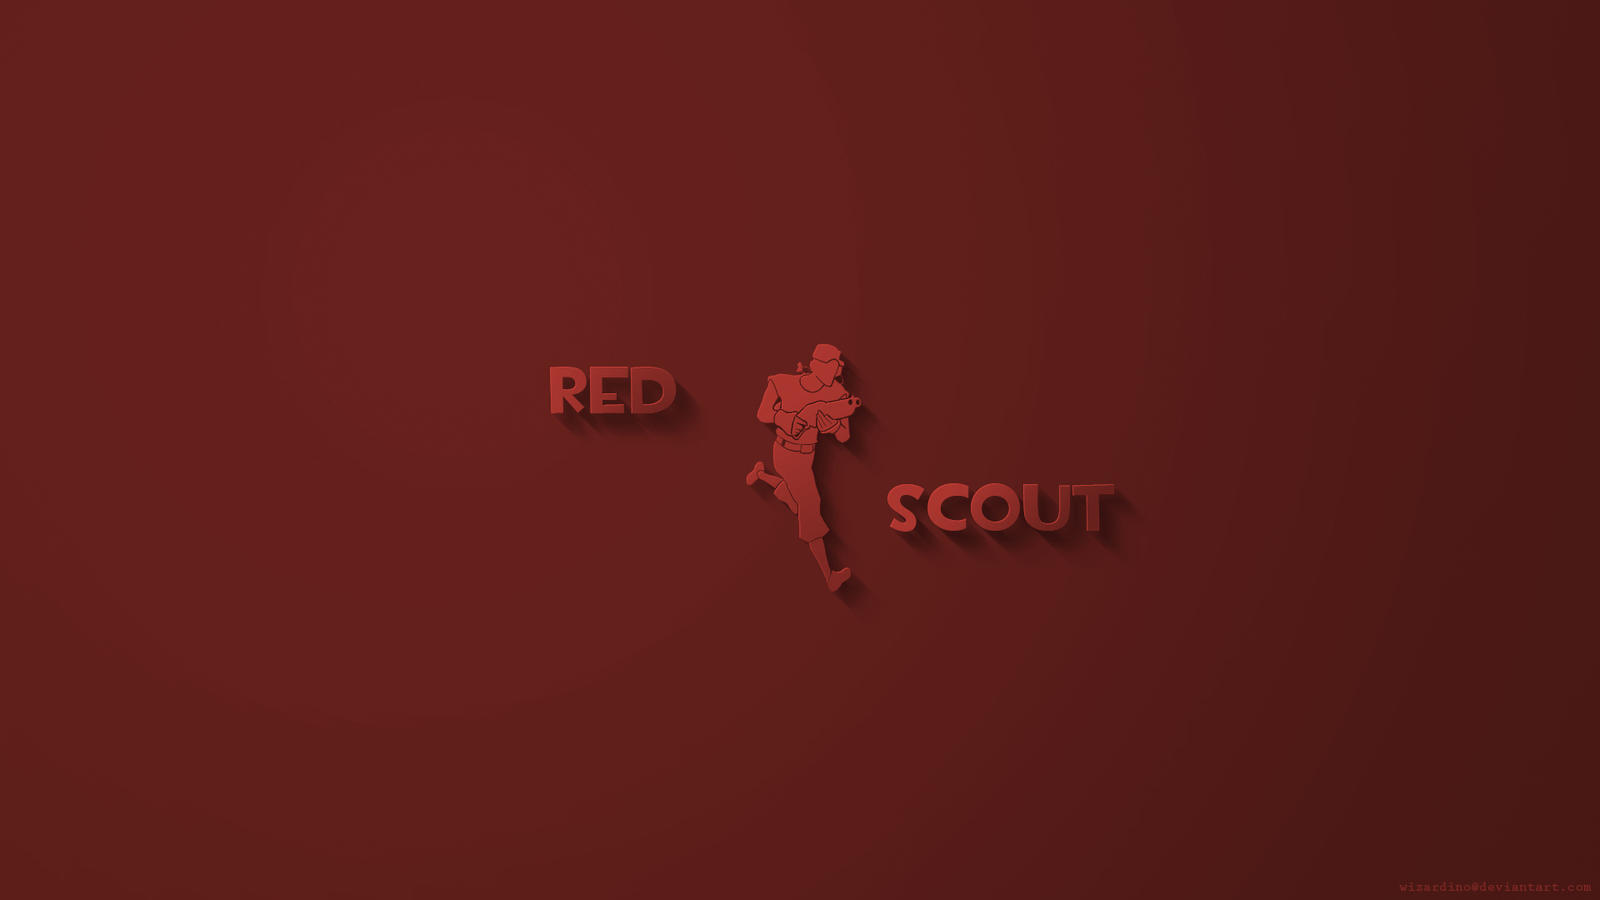 Tf2 Red Scout Wallpaper